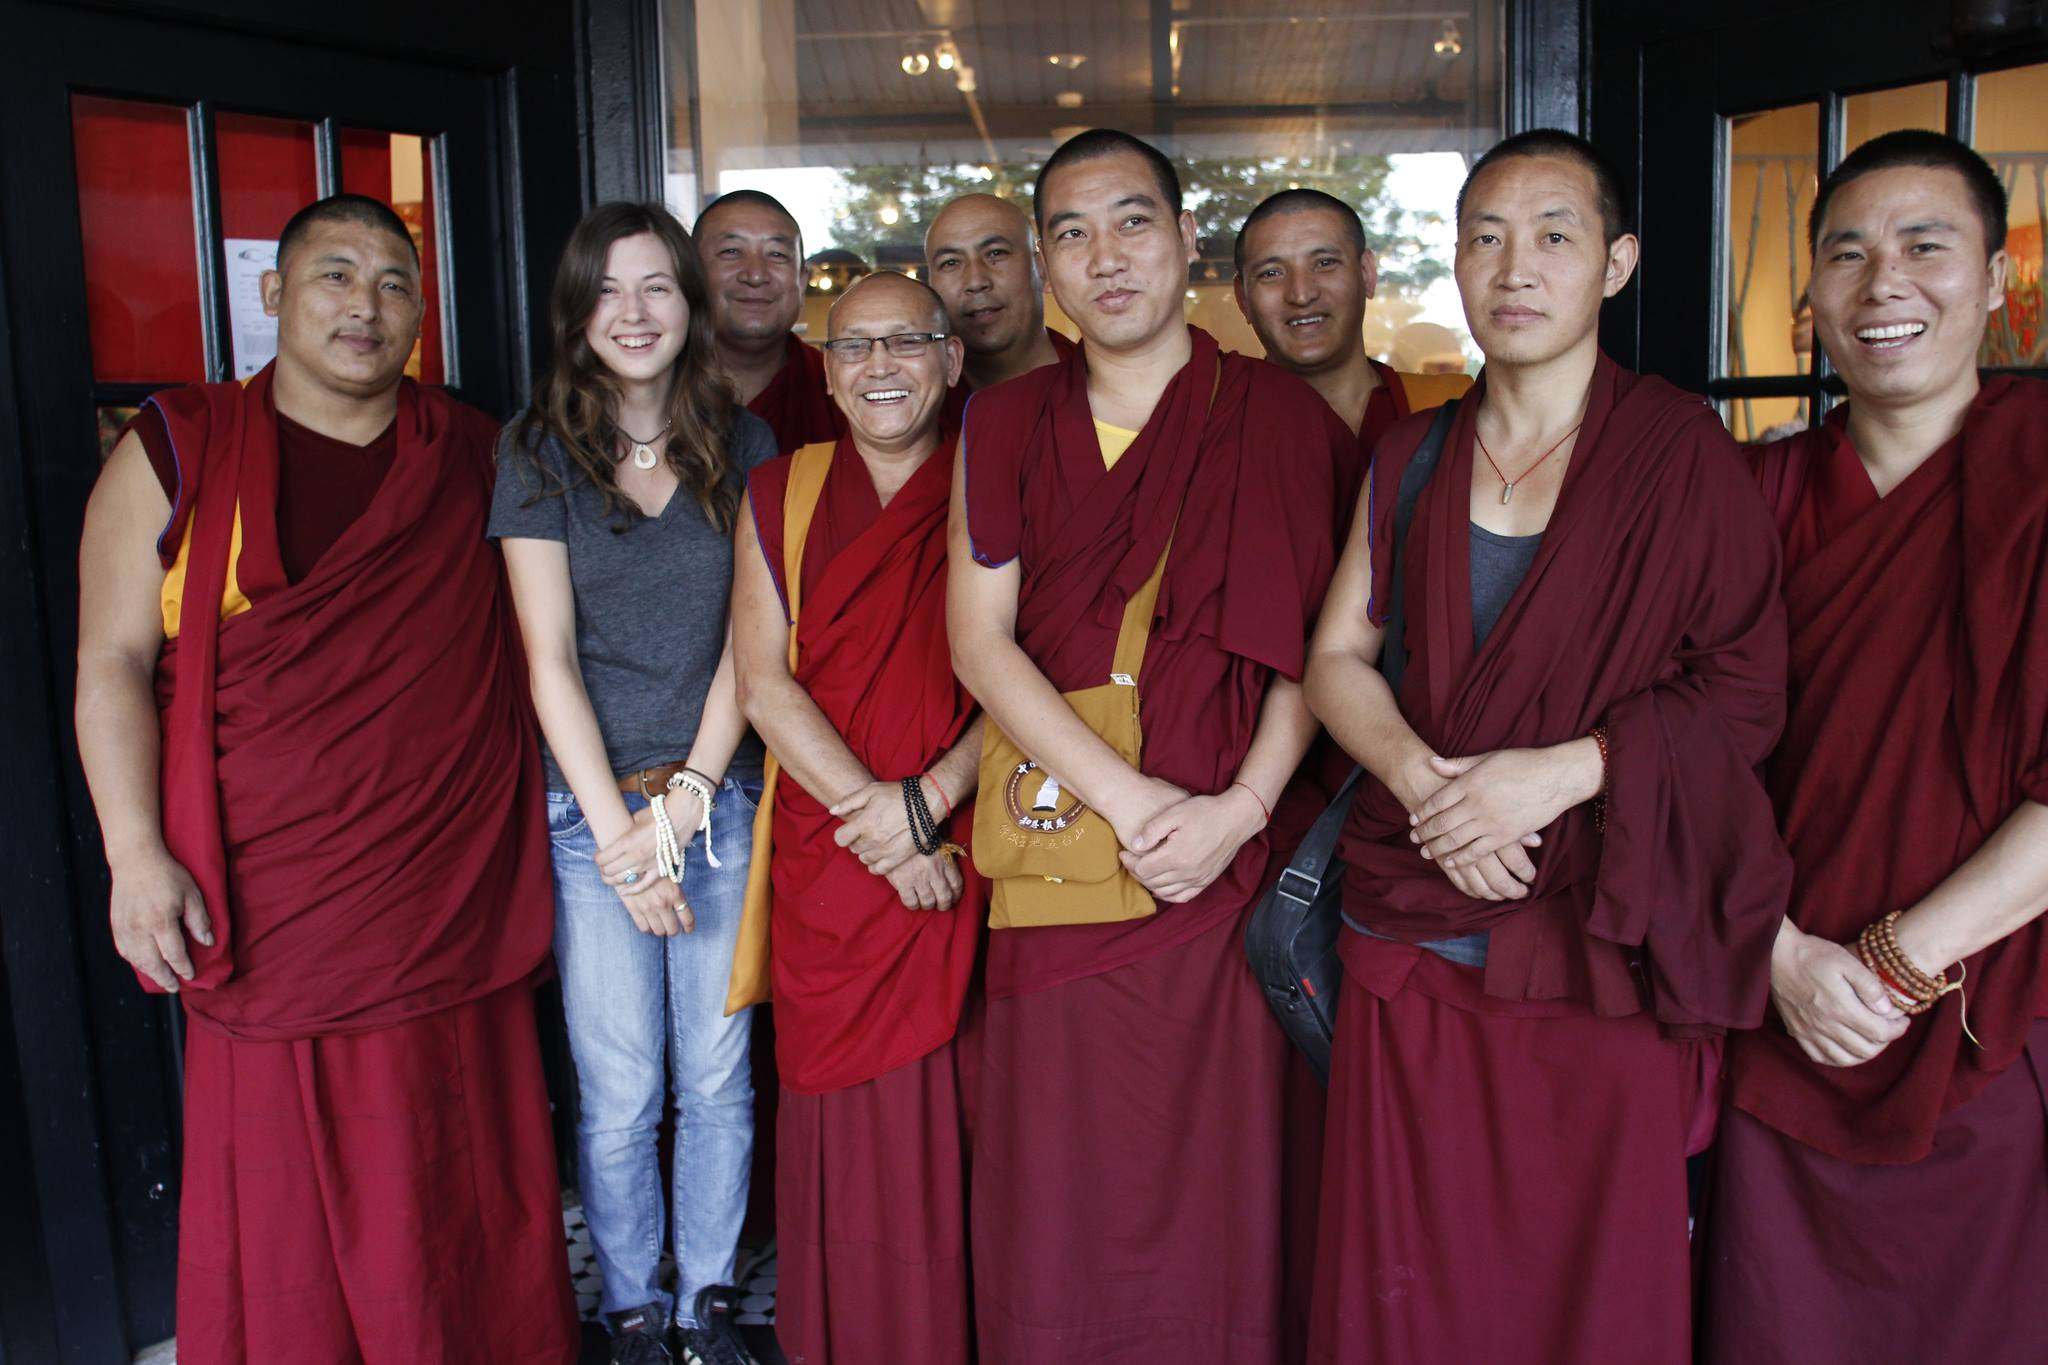 A woman in street clothes stands among a group of Buddhist monks in traditional robes. All are looking at the camera